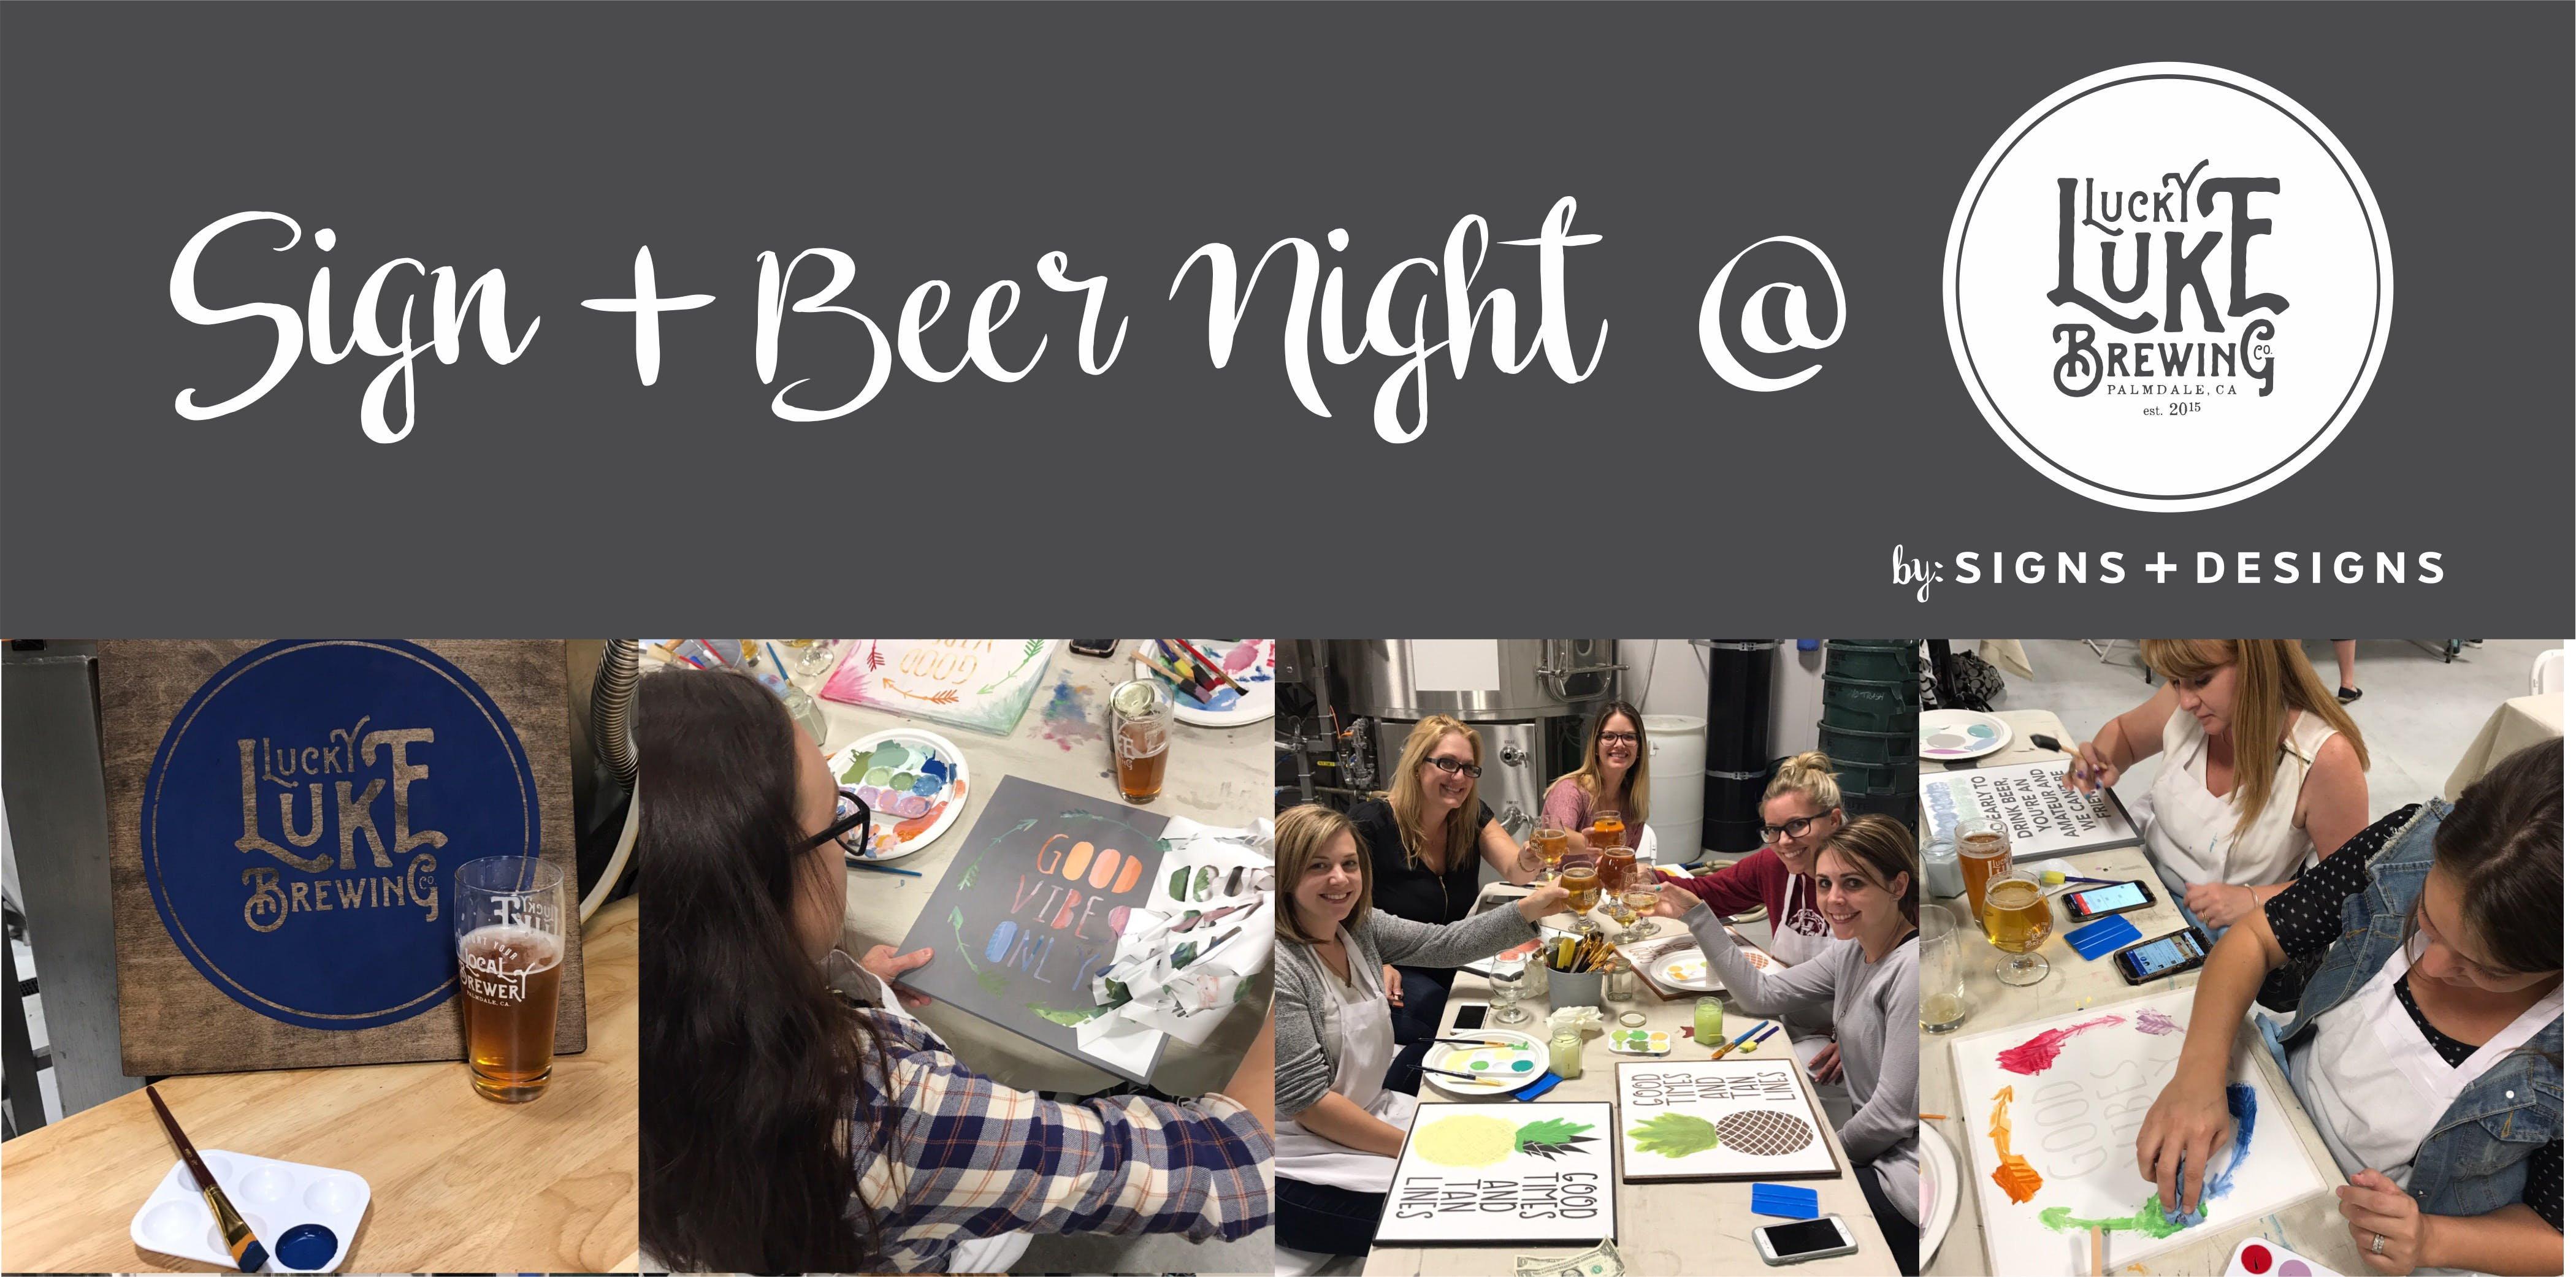 Sign + Beer Night @ Lucky Luke Brewing Co. Ma